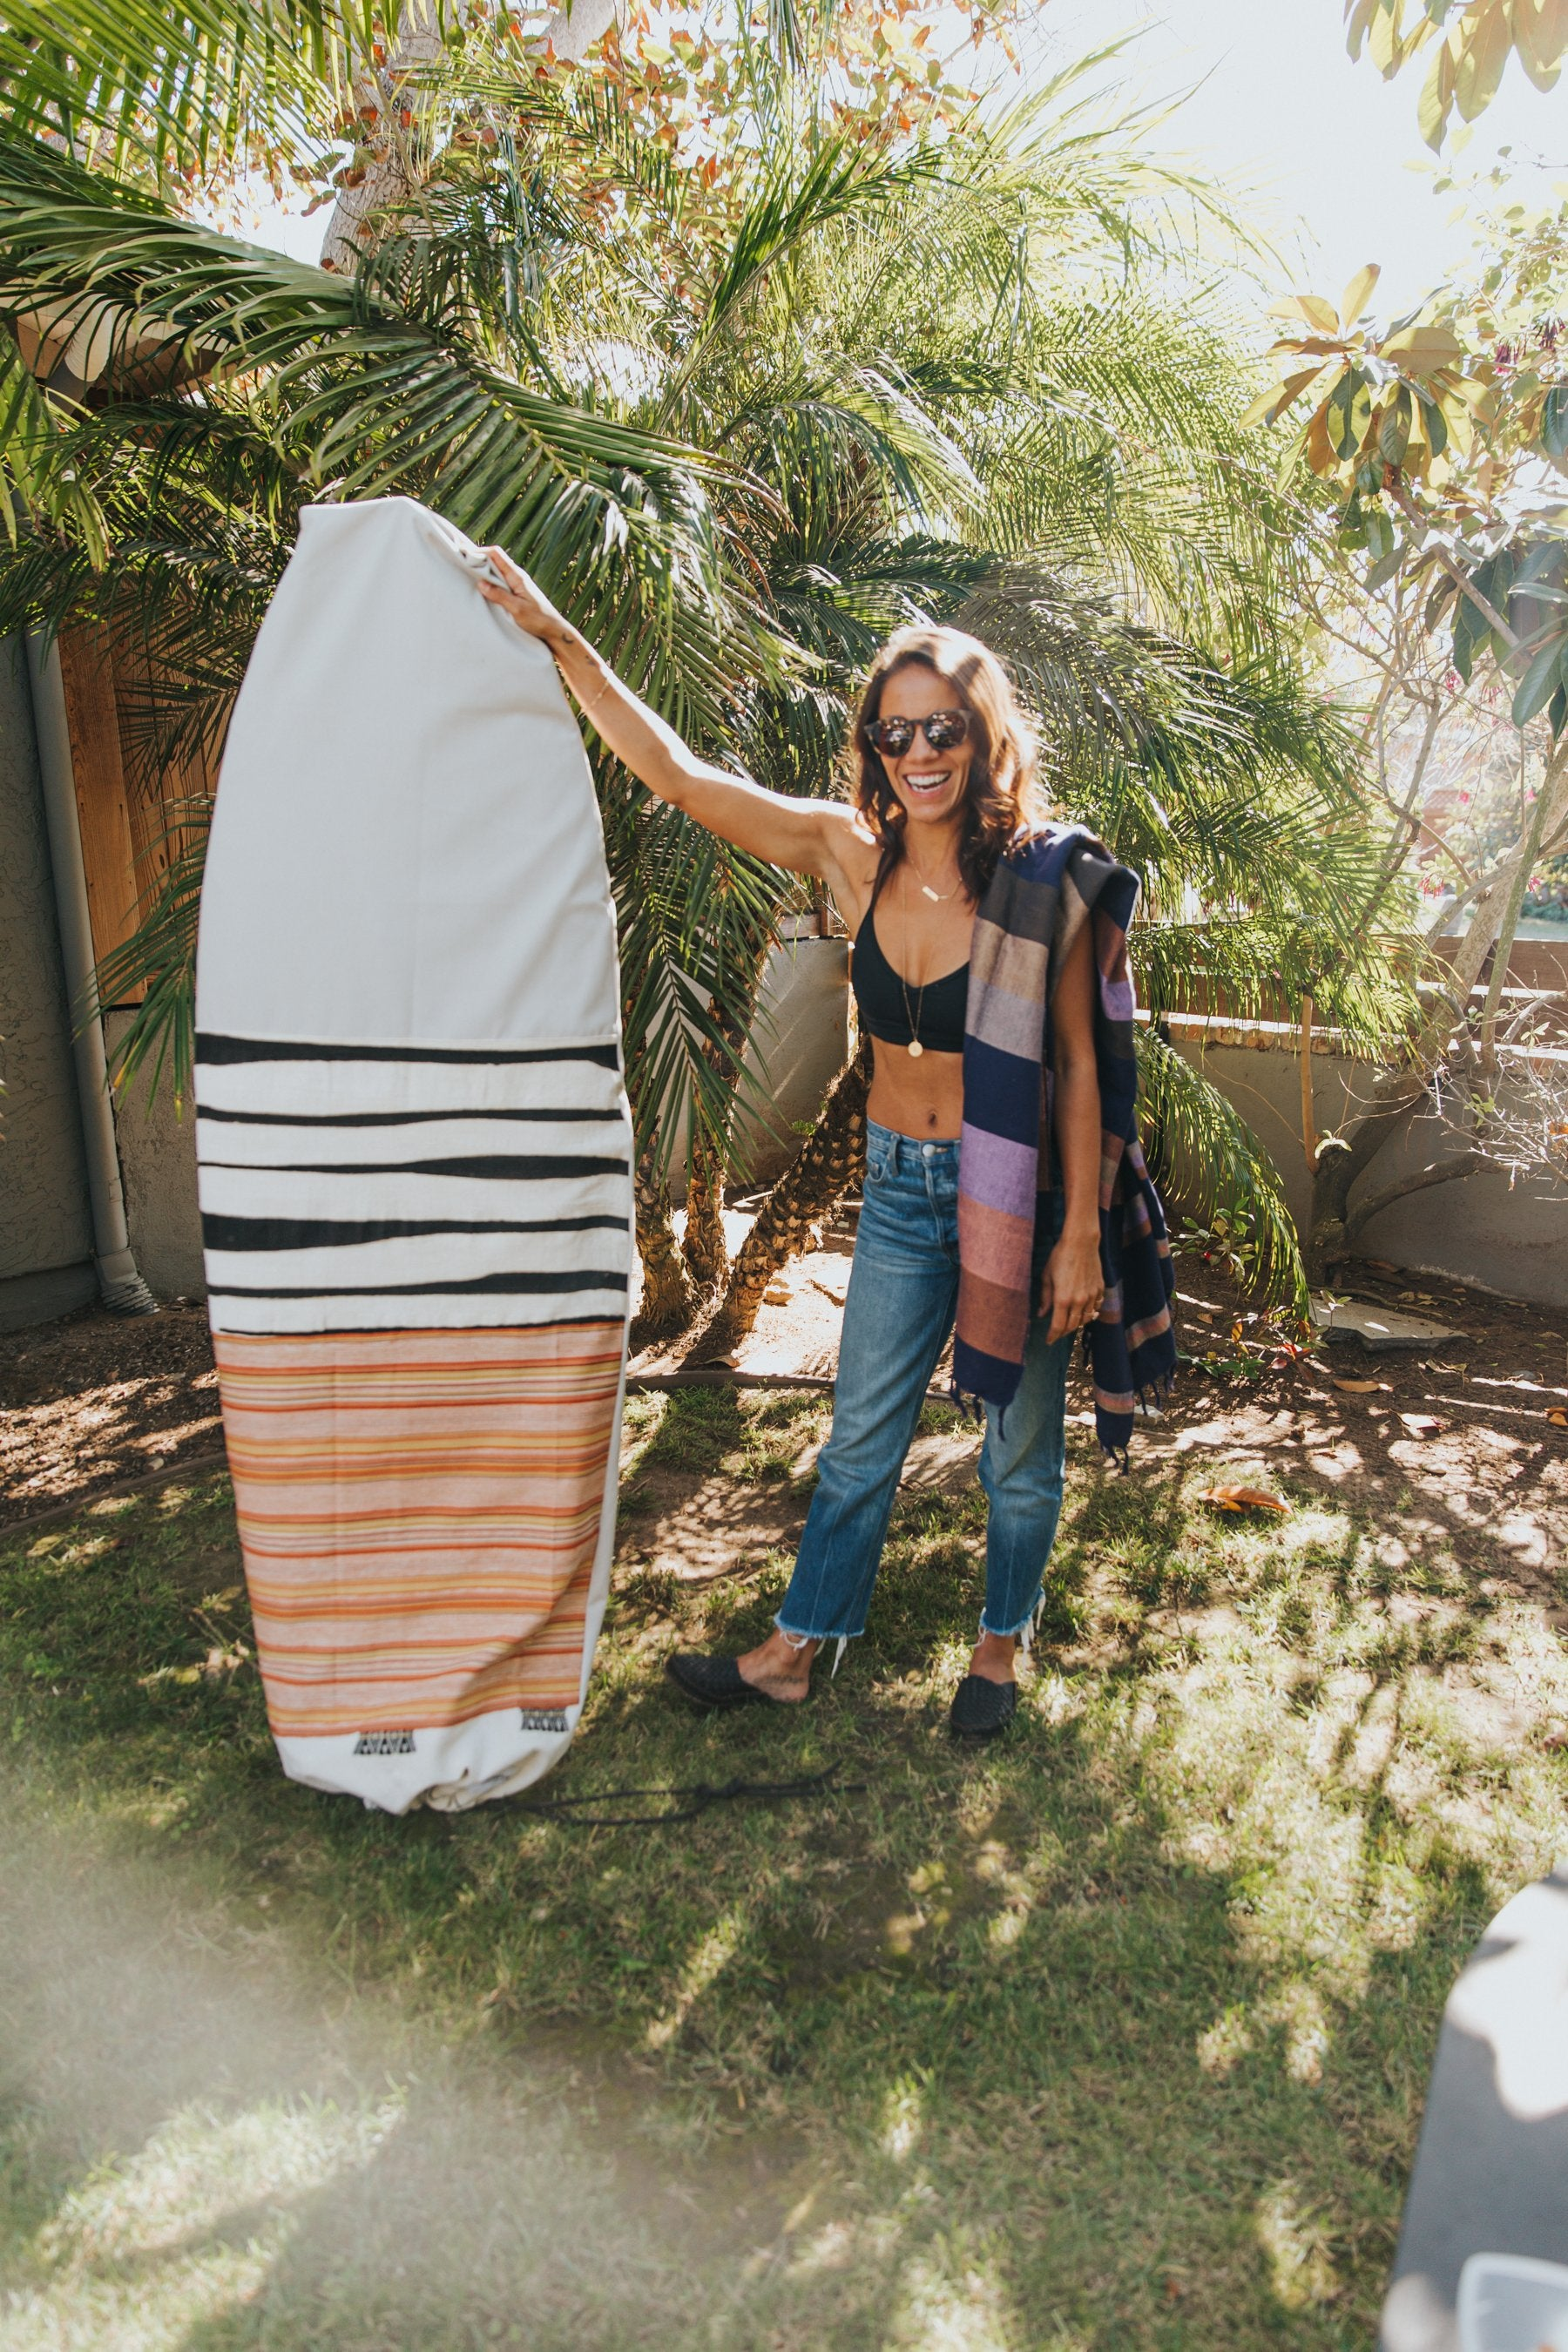 6' HANDMADE SURFBOARD BAG